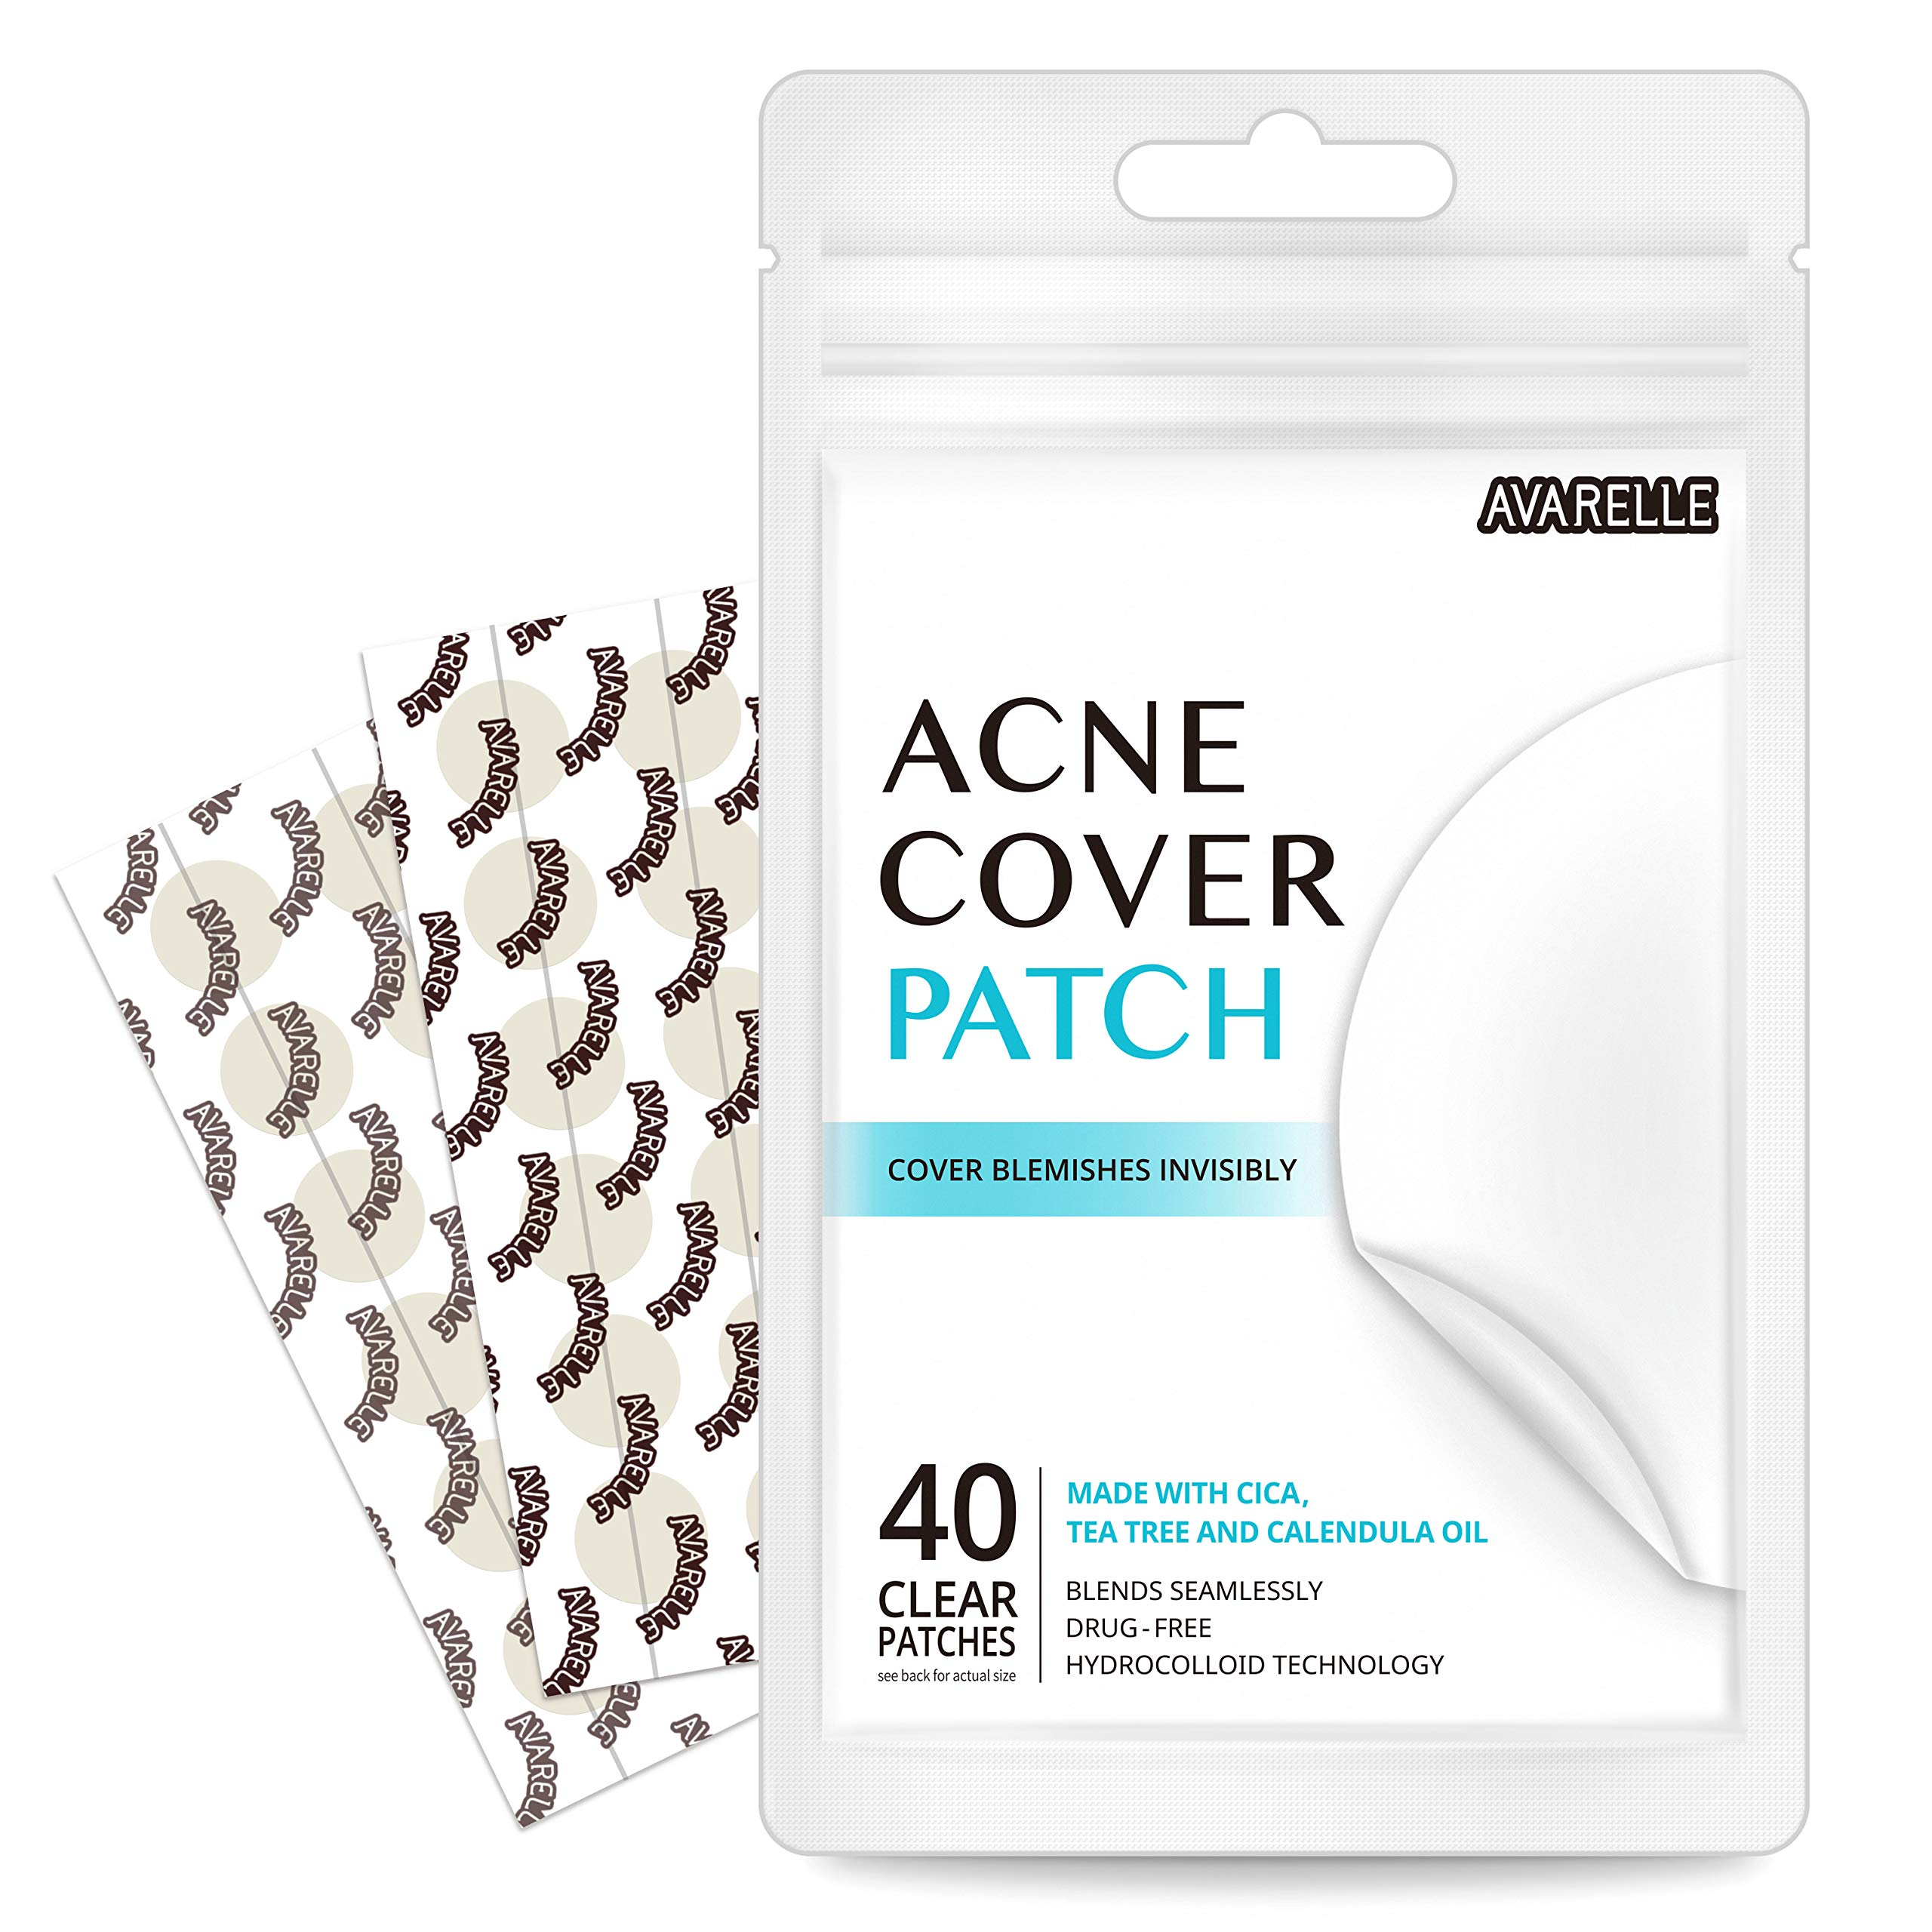 null - Avarelle Acne Absorbing Cover Patch Hydrocolloid, Tea Tree, Calendula Oil, CICA (40 ROUND PATCHES)